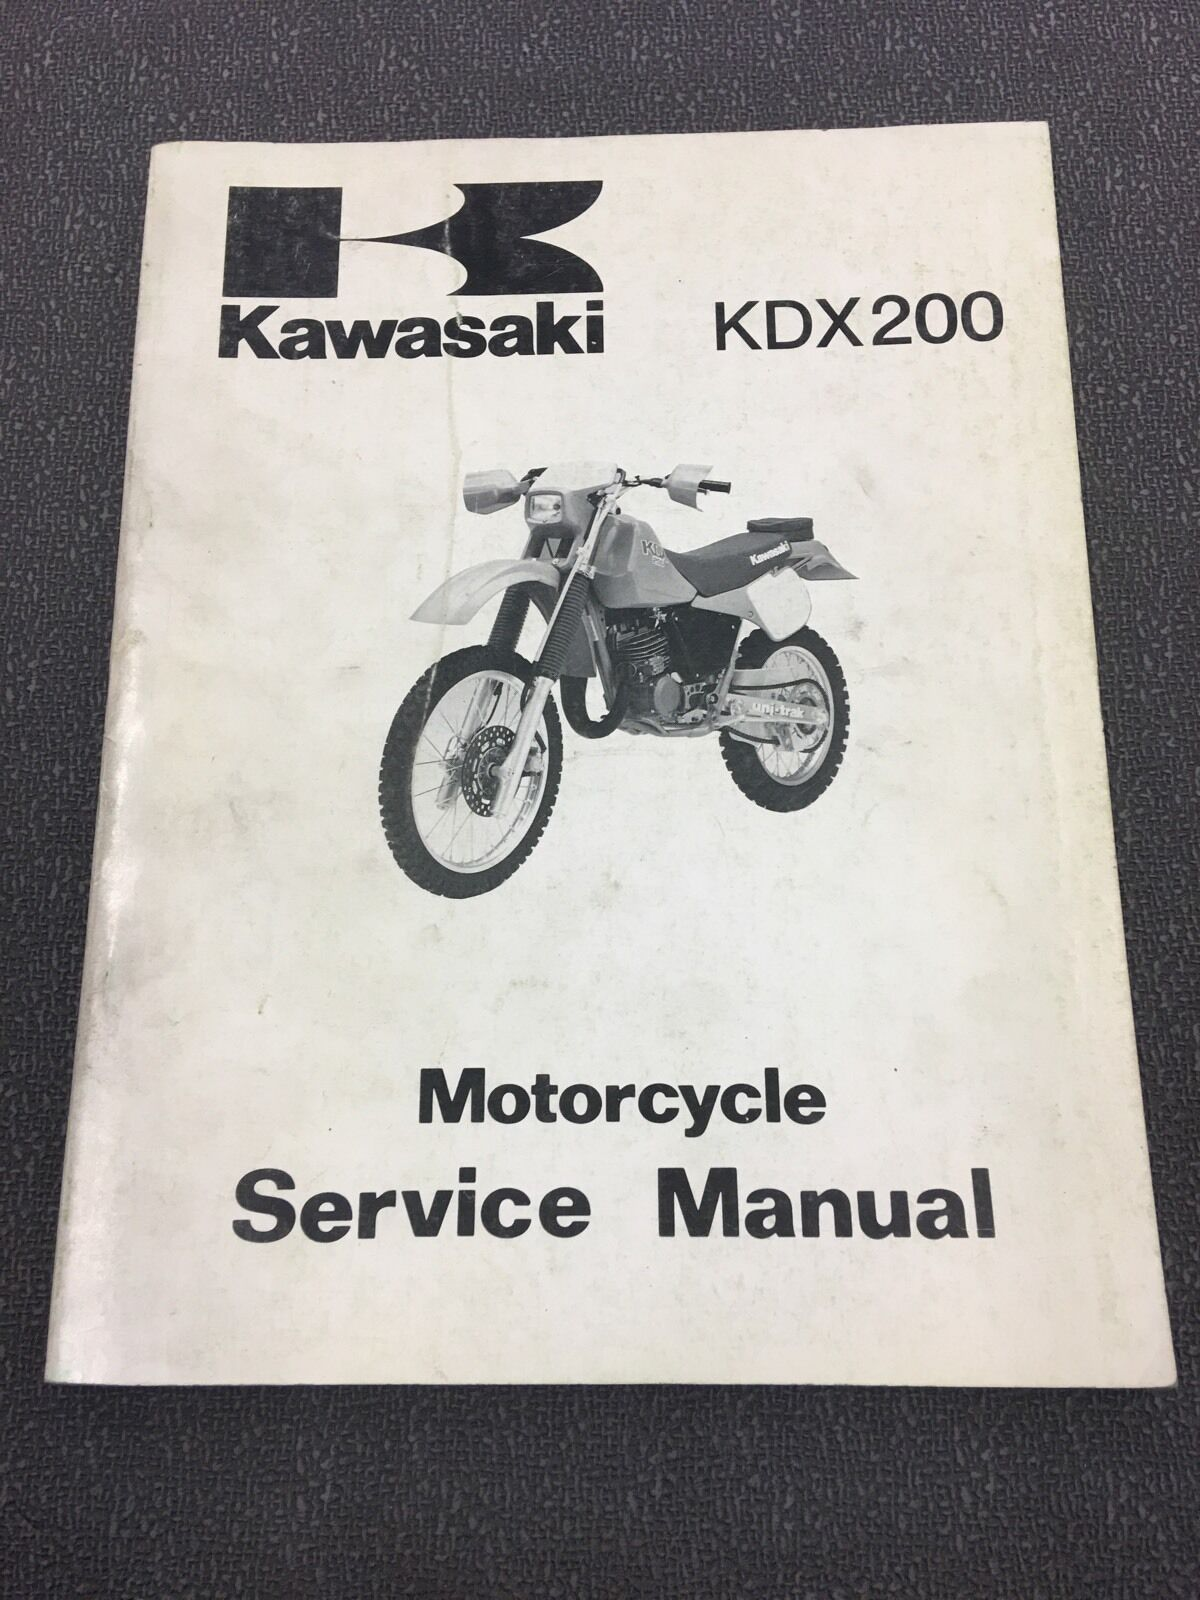 1987 Kawasaki KDX200 Service Manual 99924-1105-01 1 of 1Only 1 available ...